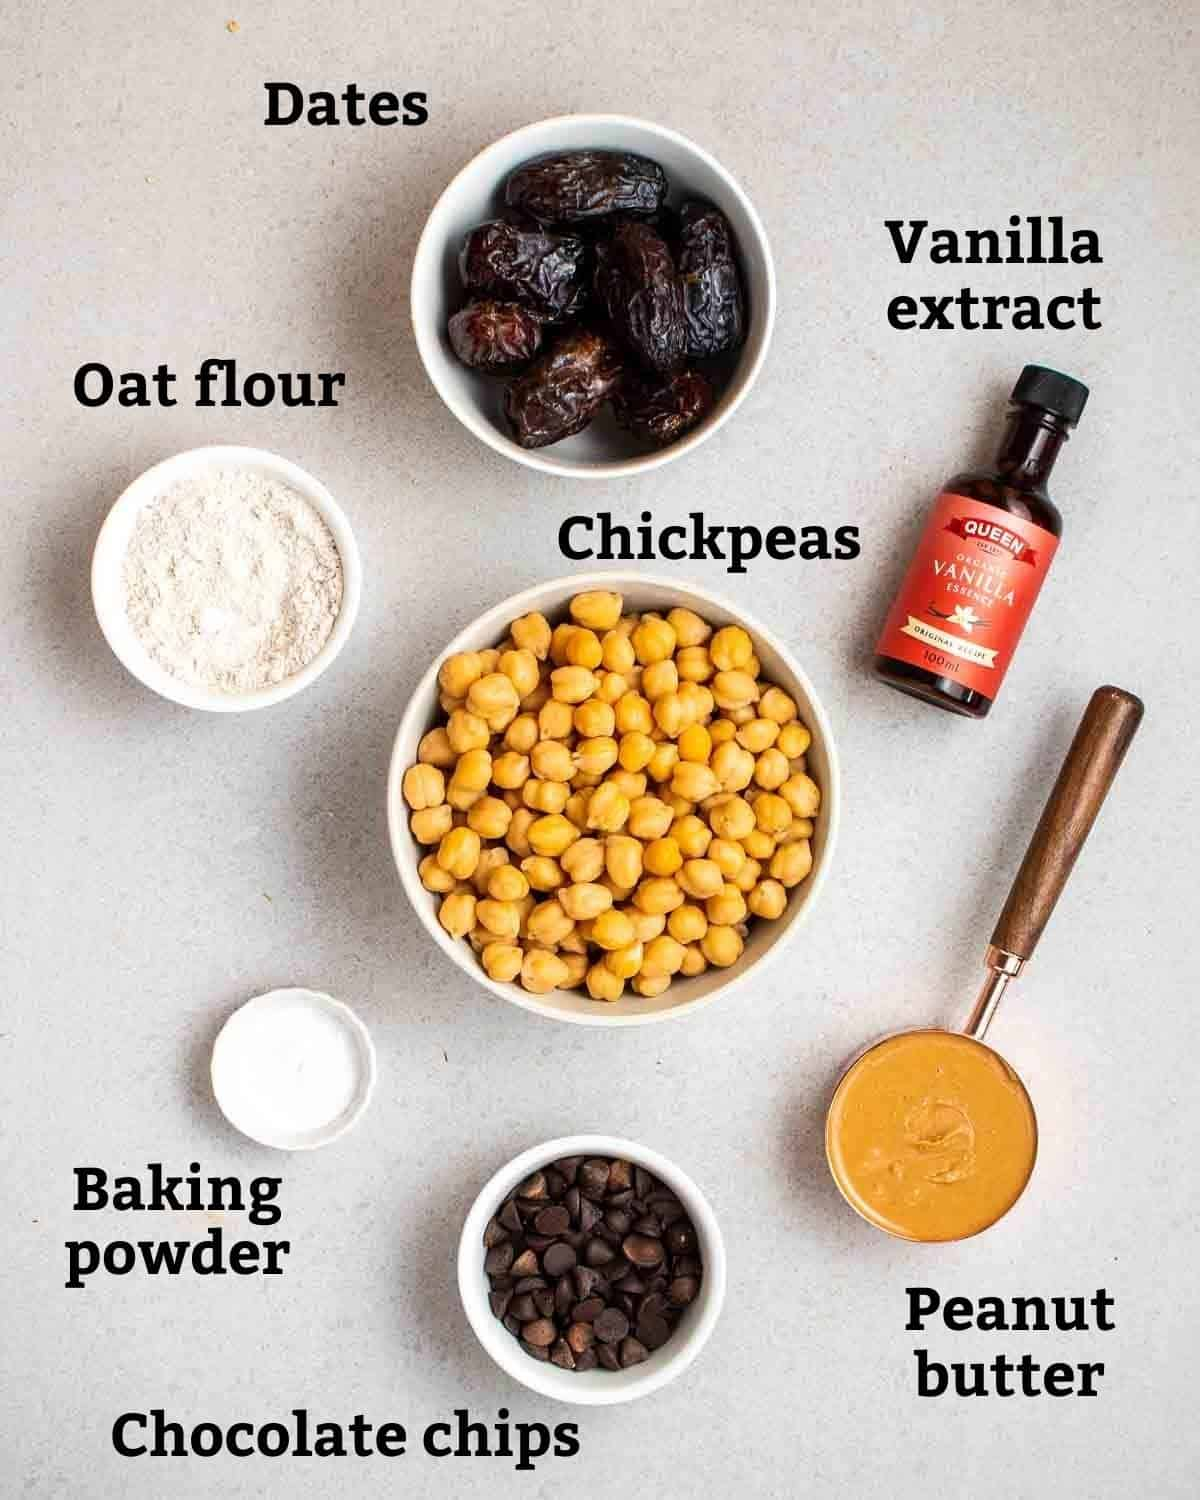 Ingredients needed like chickpeas, peanut butter, dates and oat flour on a grey background.